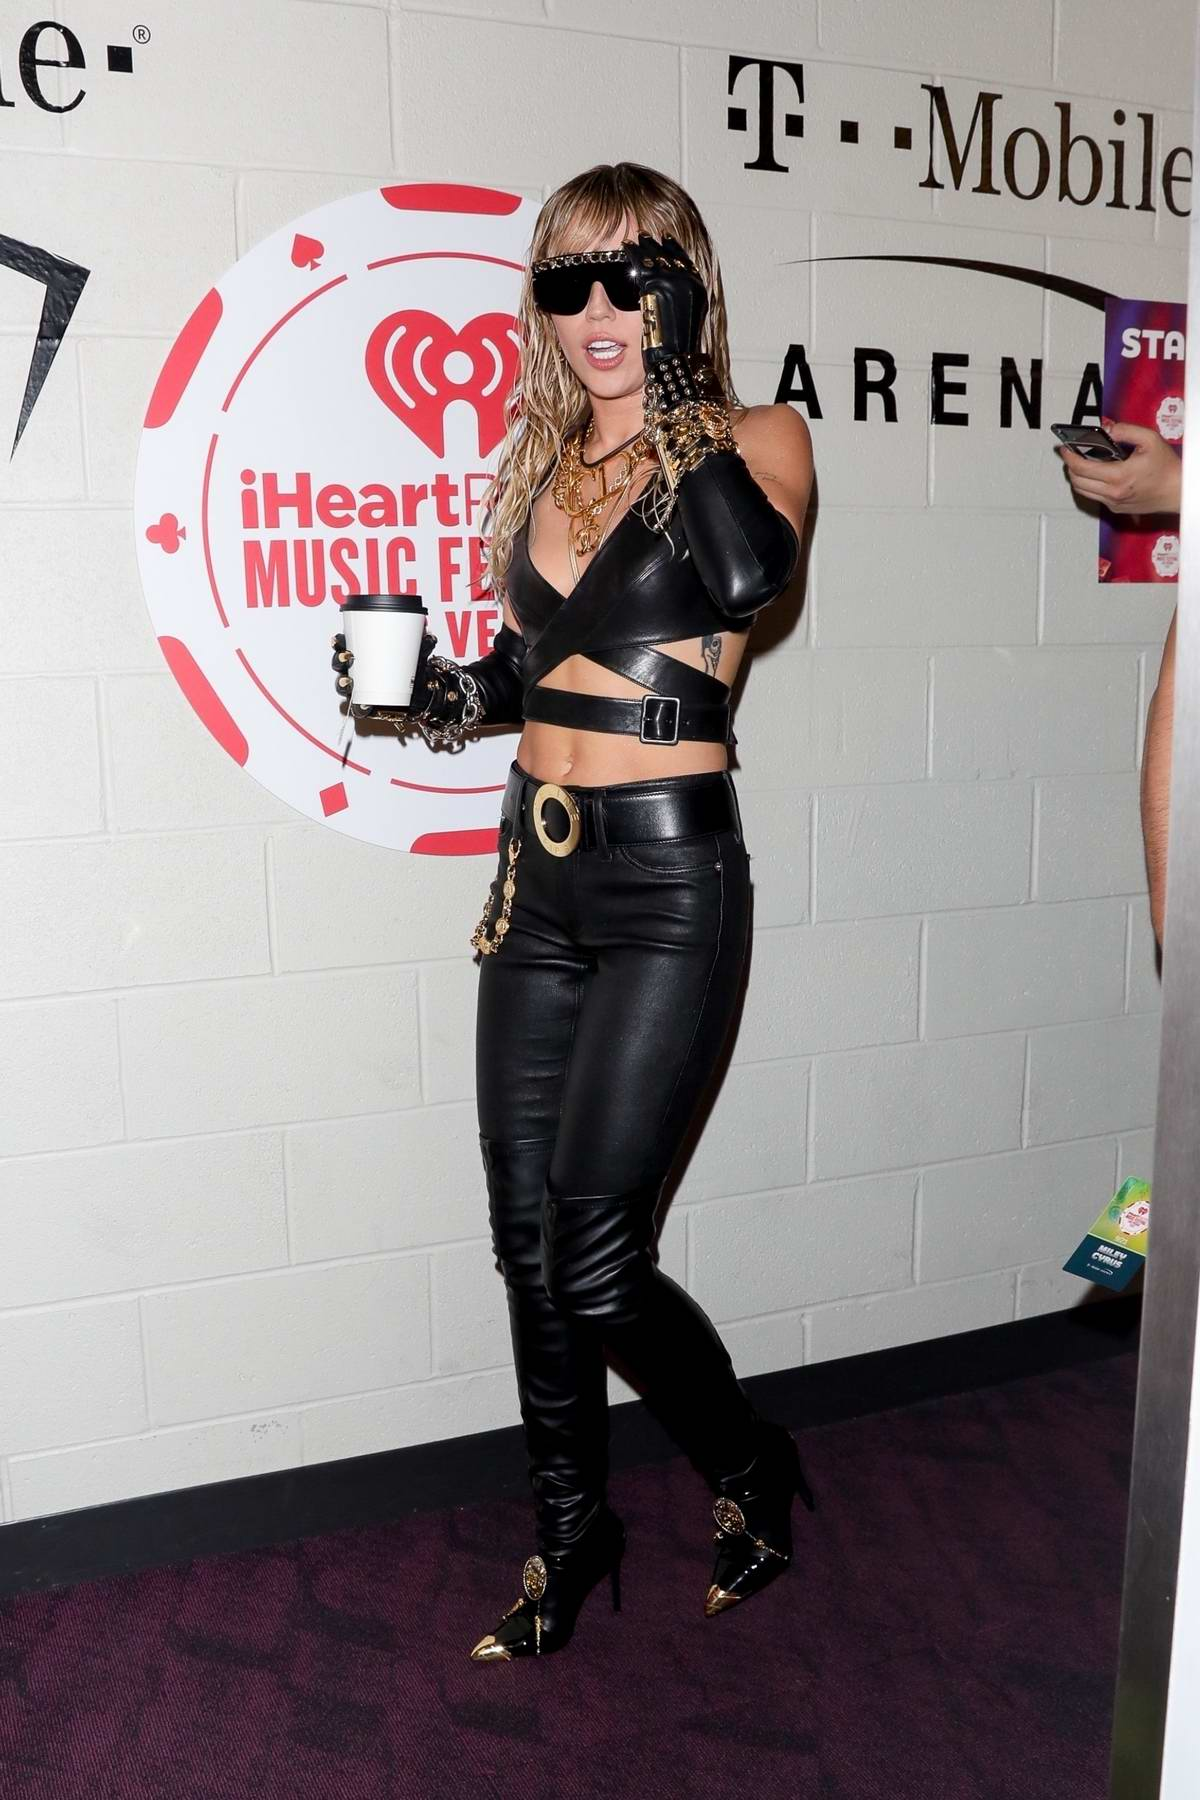 Miley Cyrus seen backstage on her way to perform at the 2019 iHeartRadio Music Festival in Las Vegas, Nevada